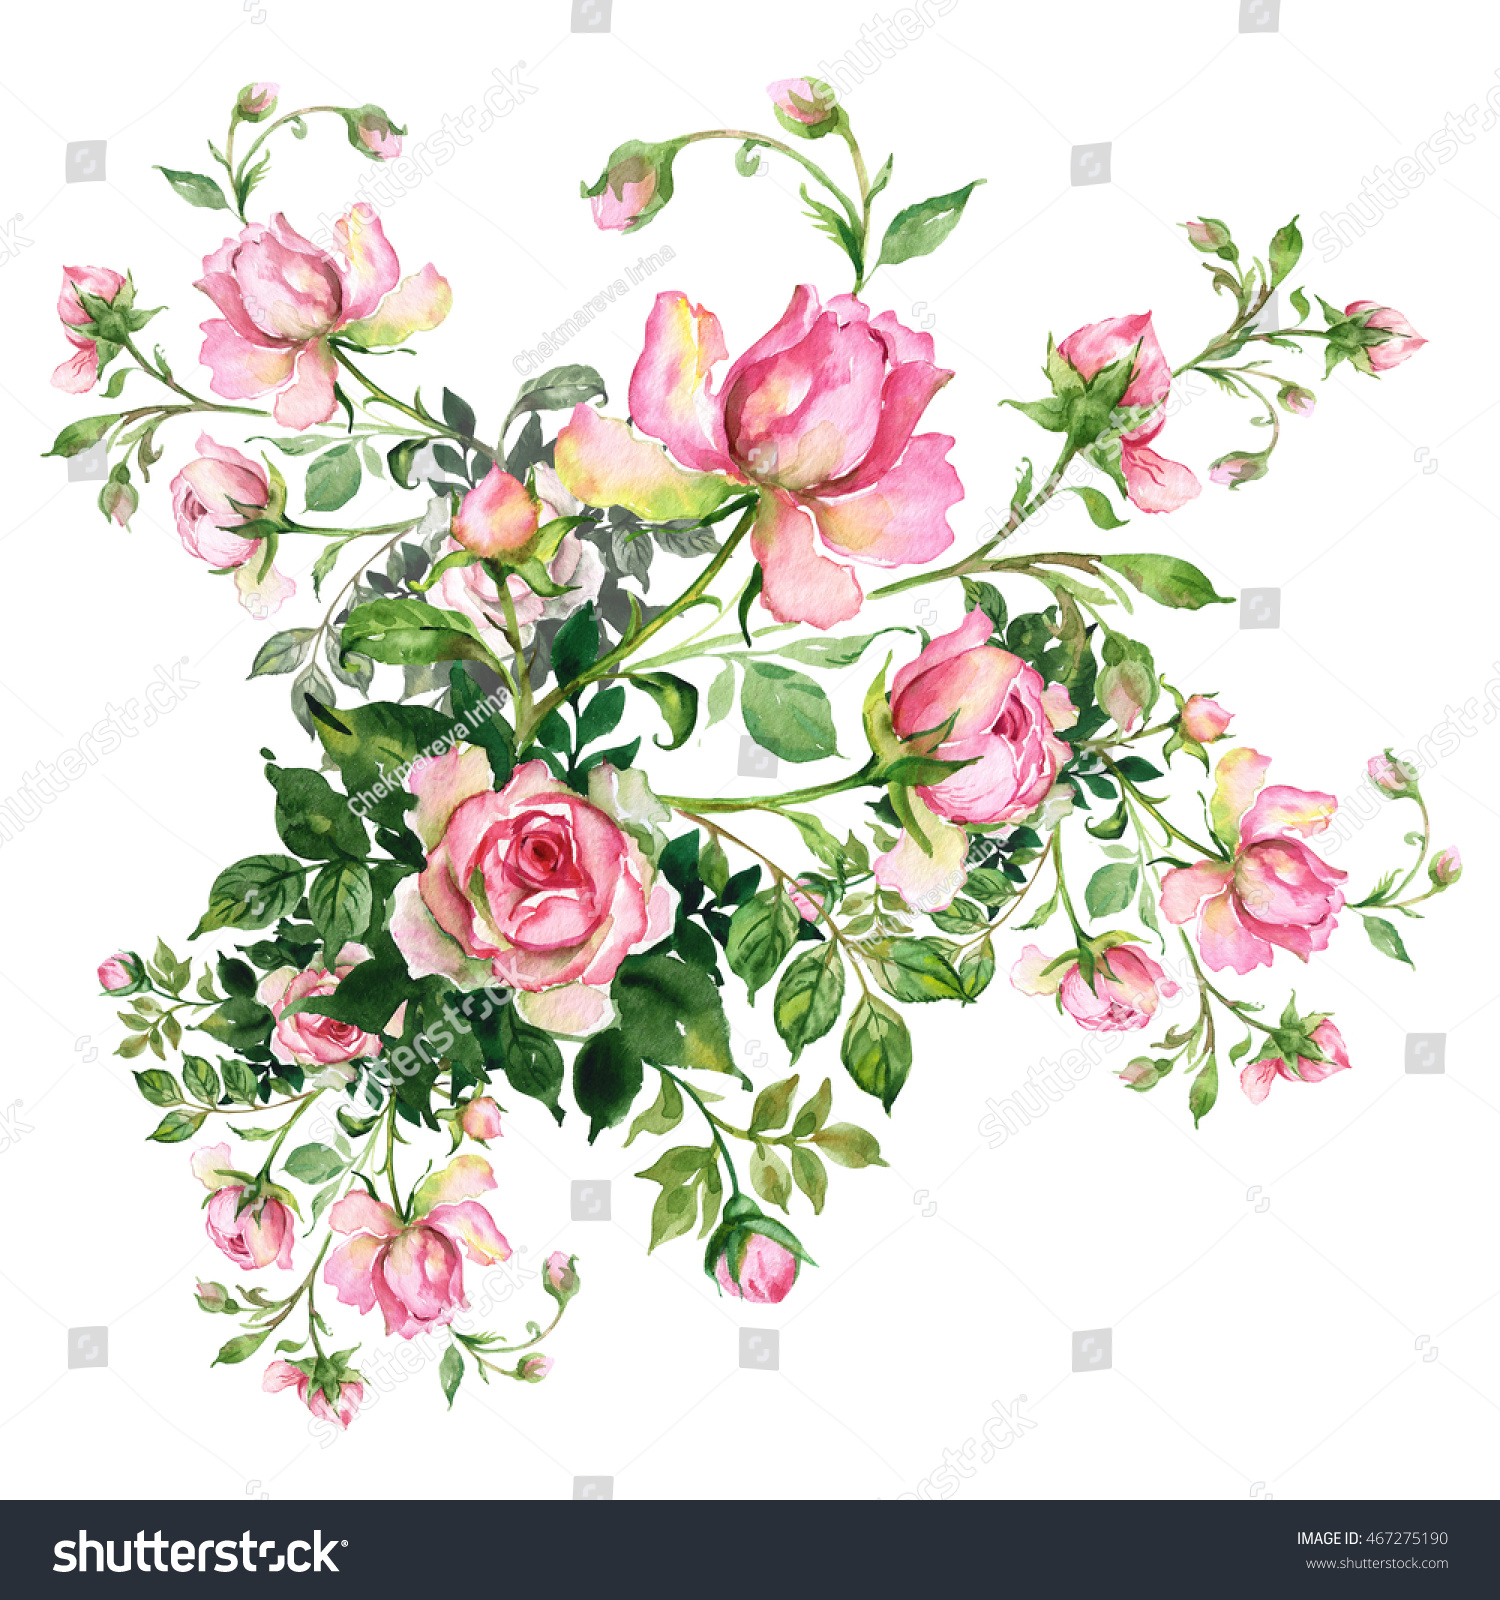 Watercolor Background Rosebud Bouquet Roses Buds Stock Illustration ...